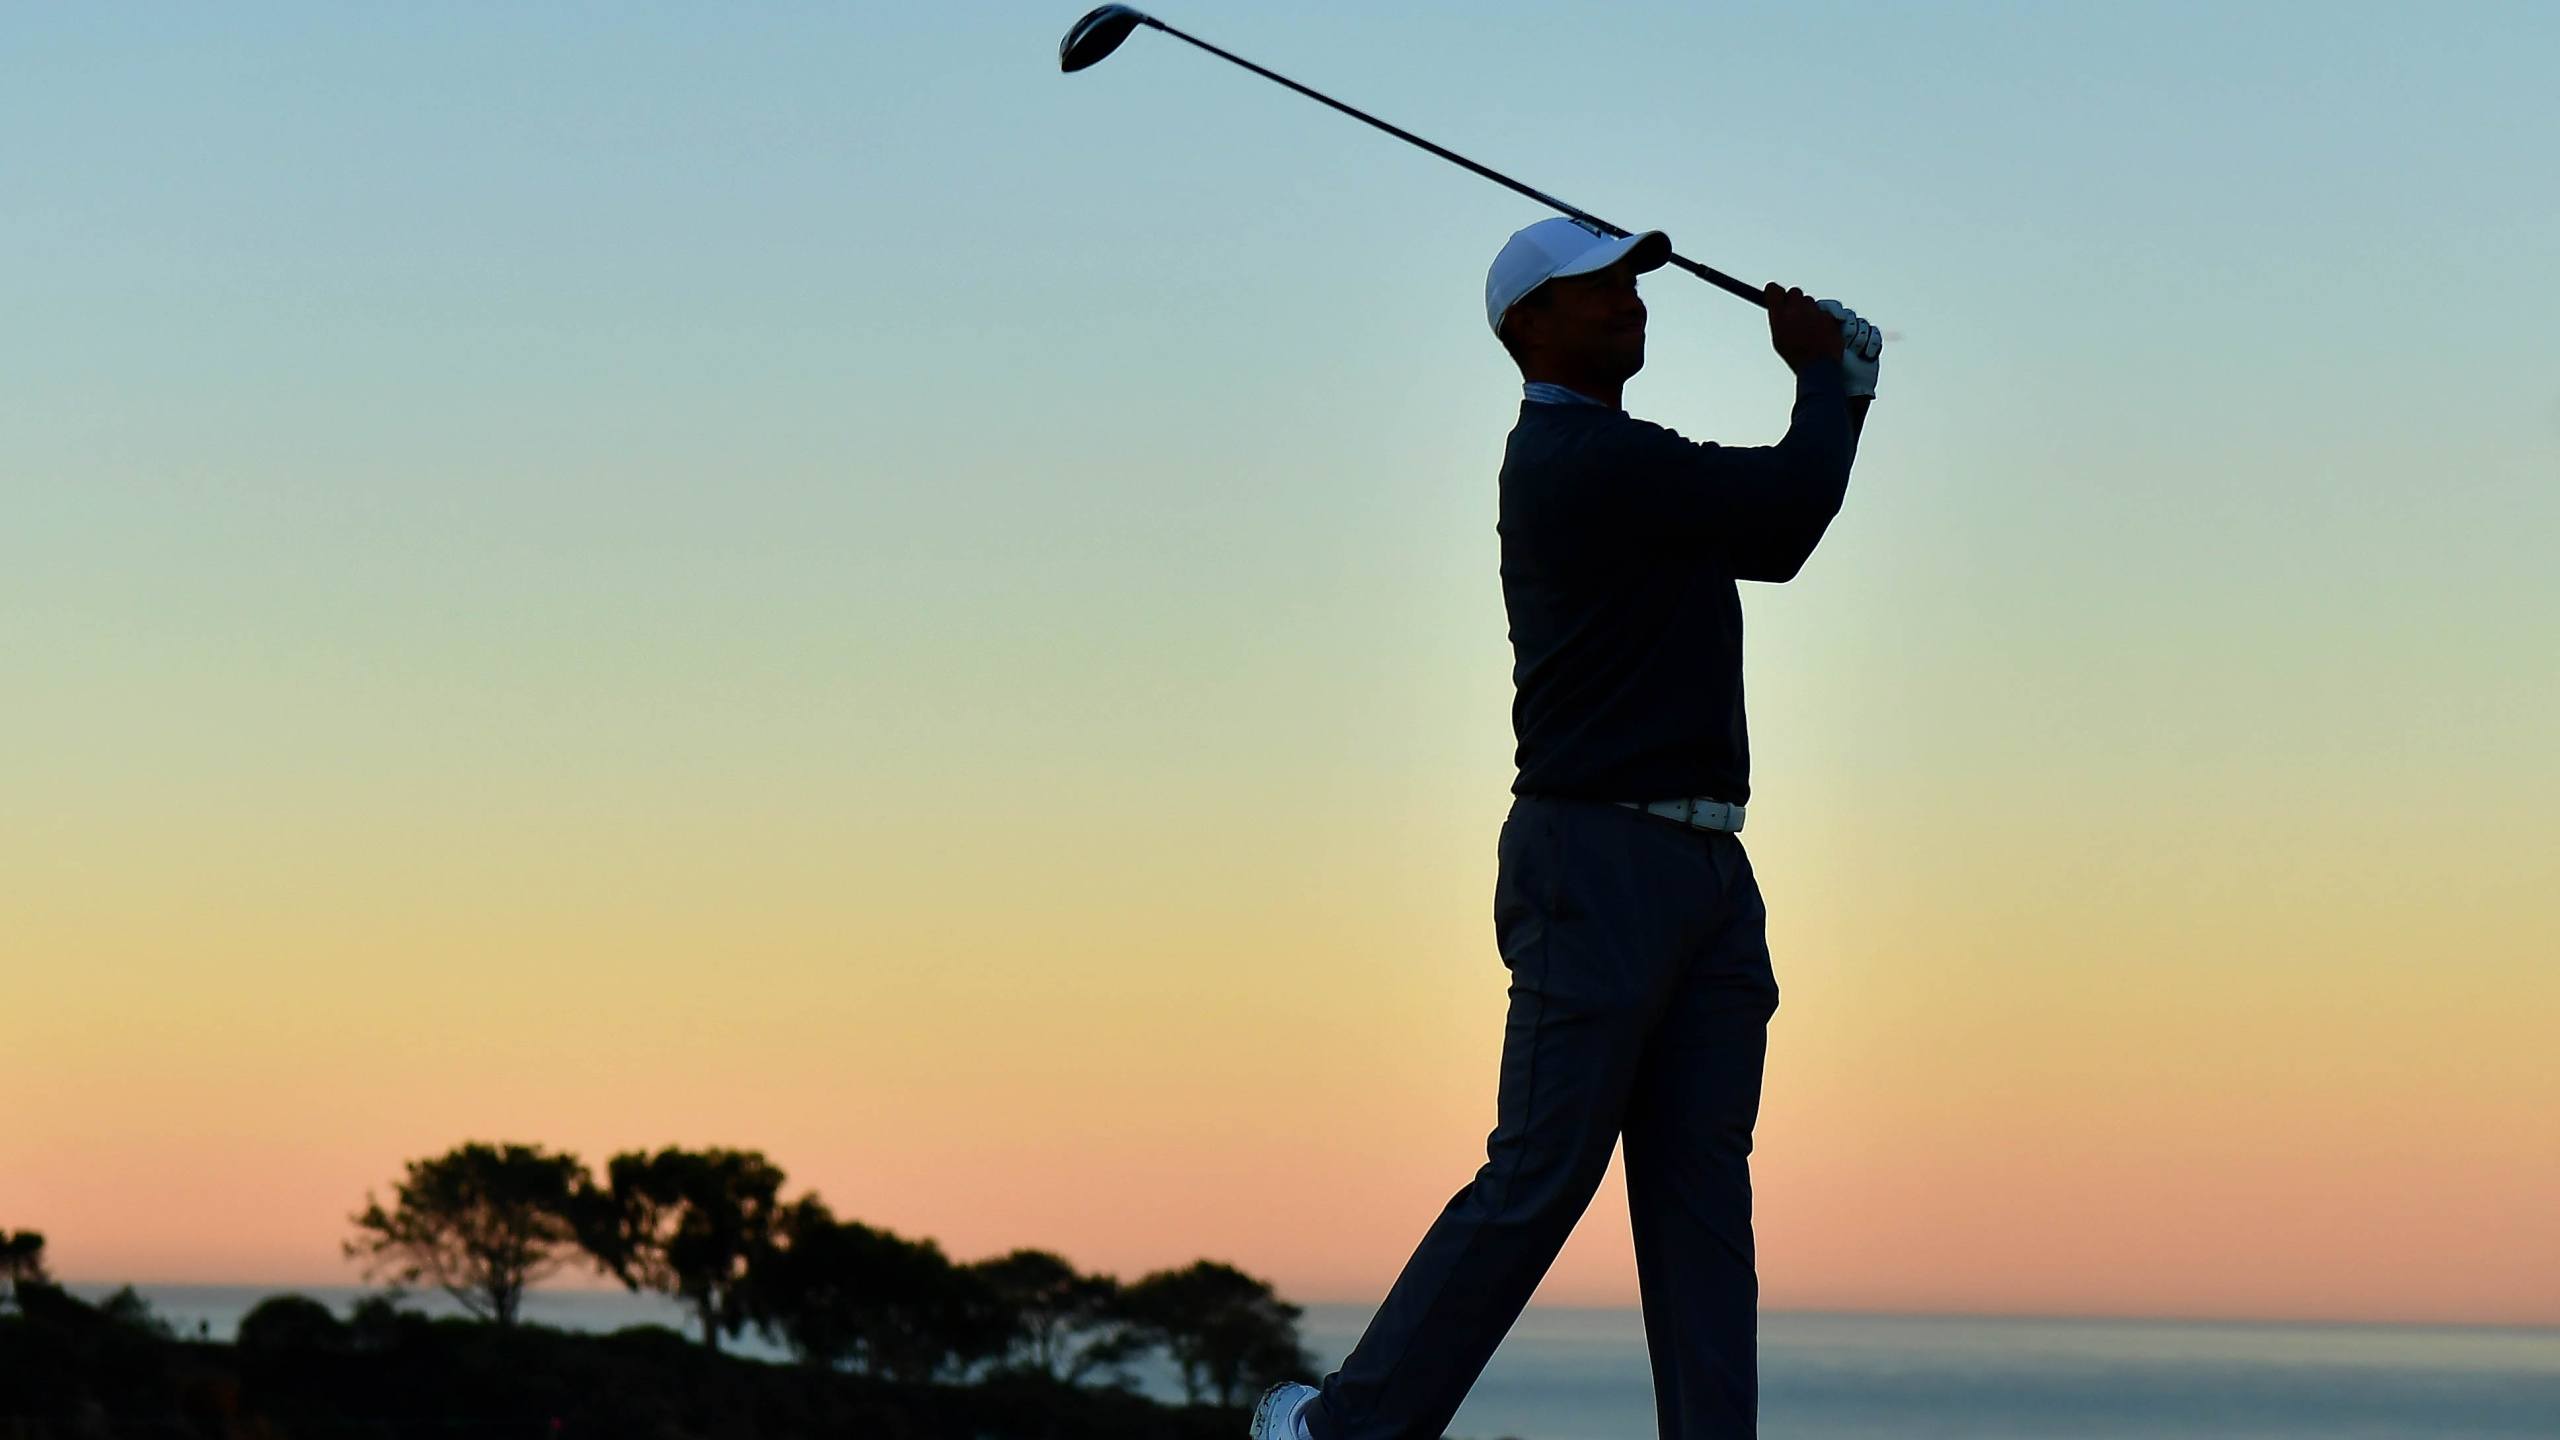 Tiger Woods Torrey Pines 2019